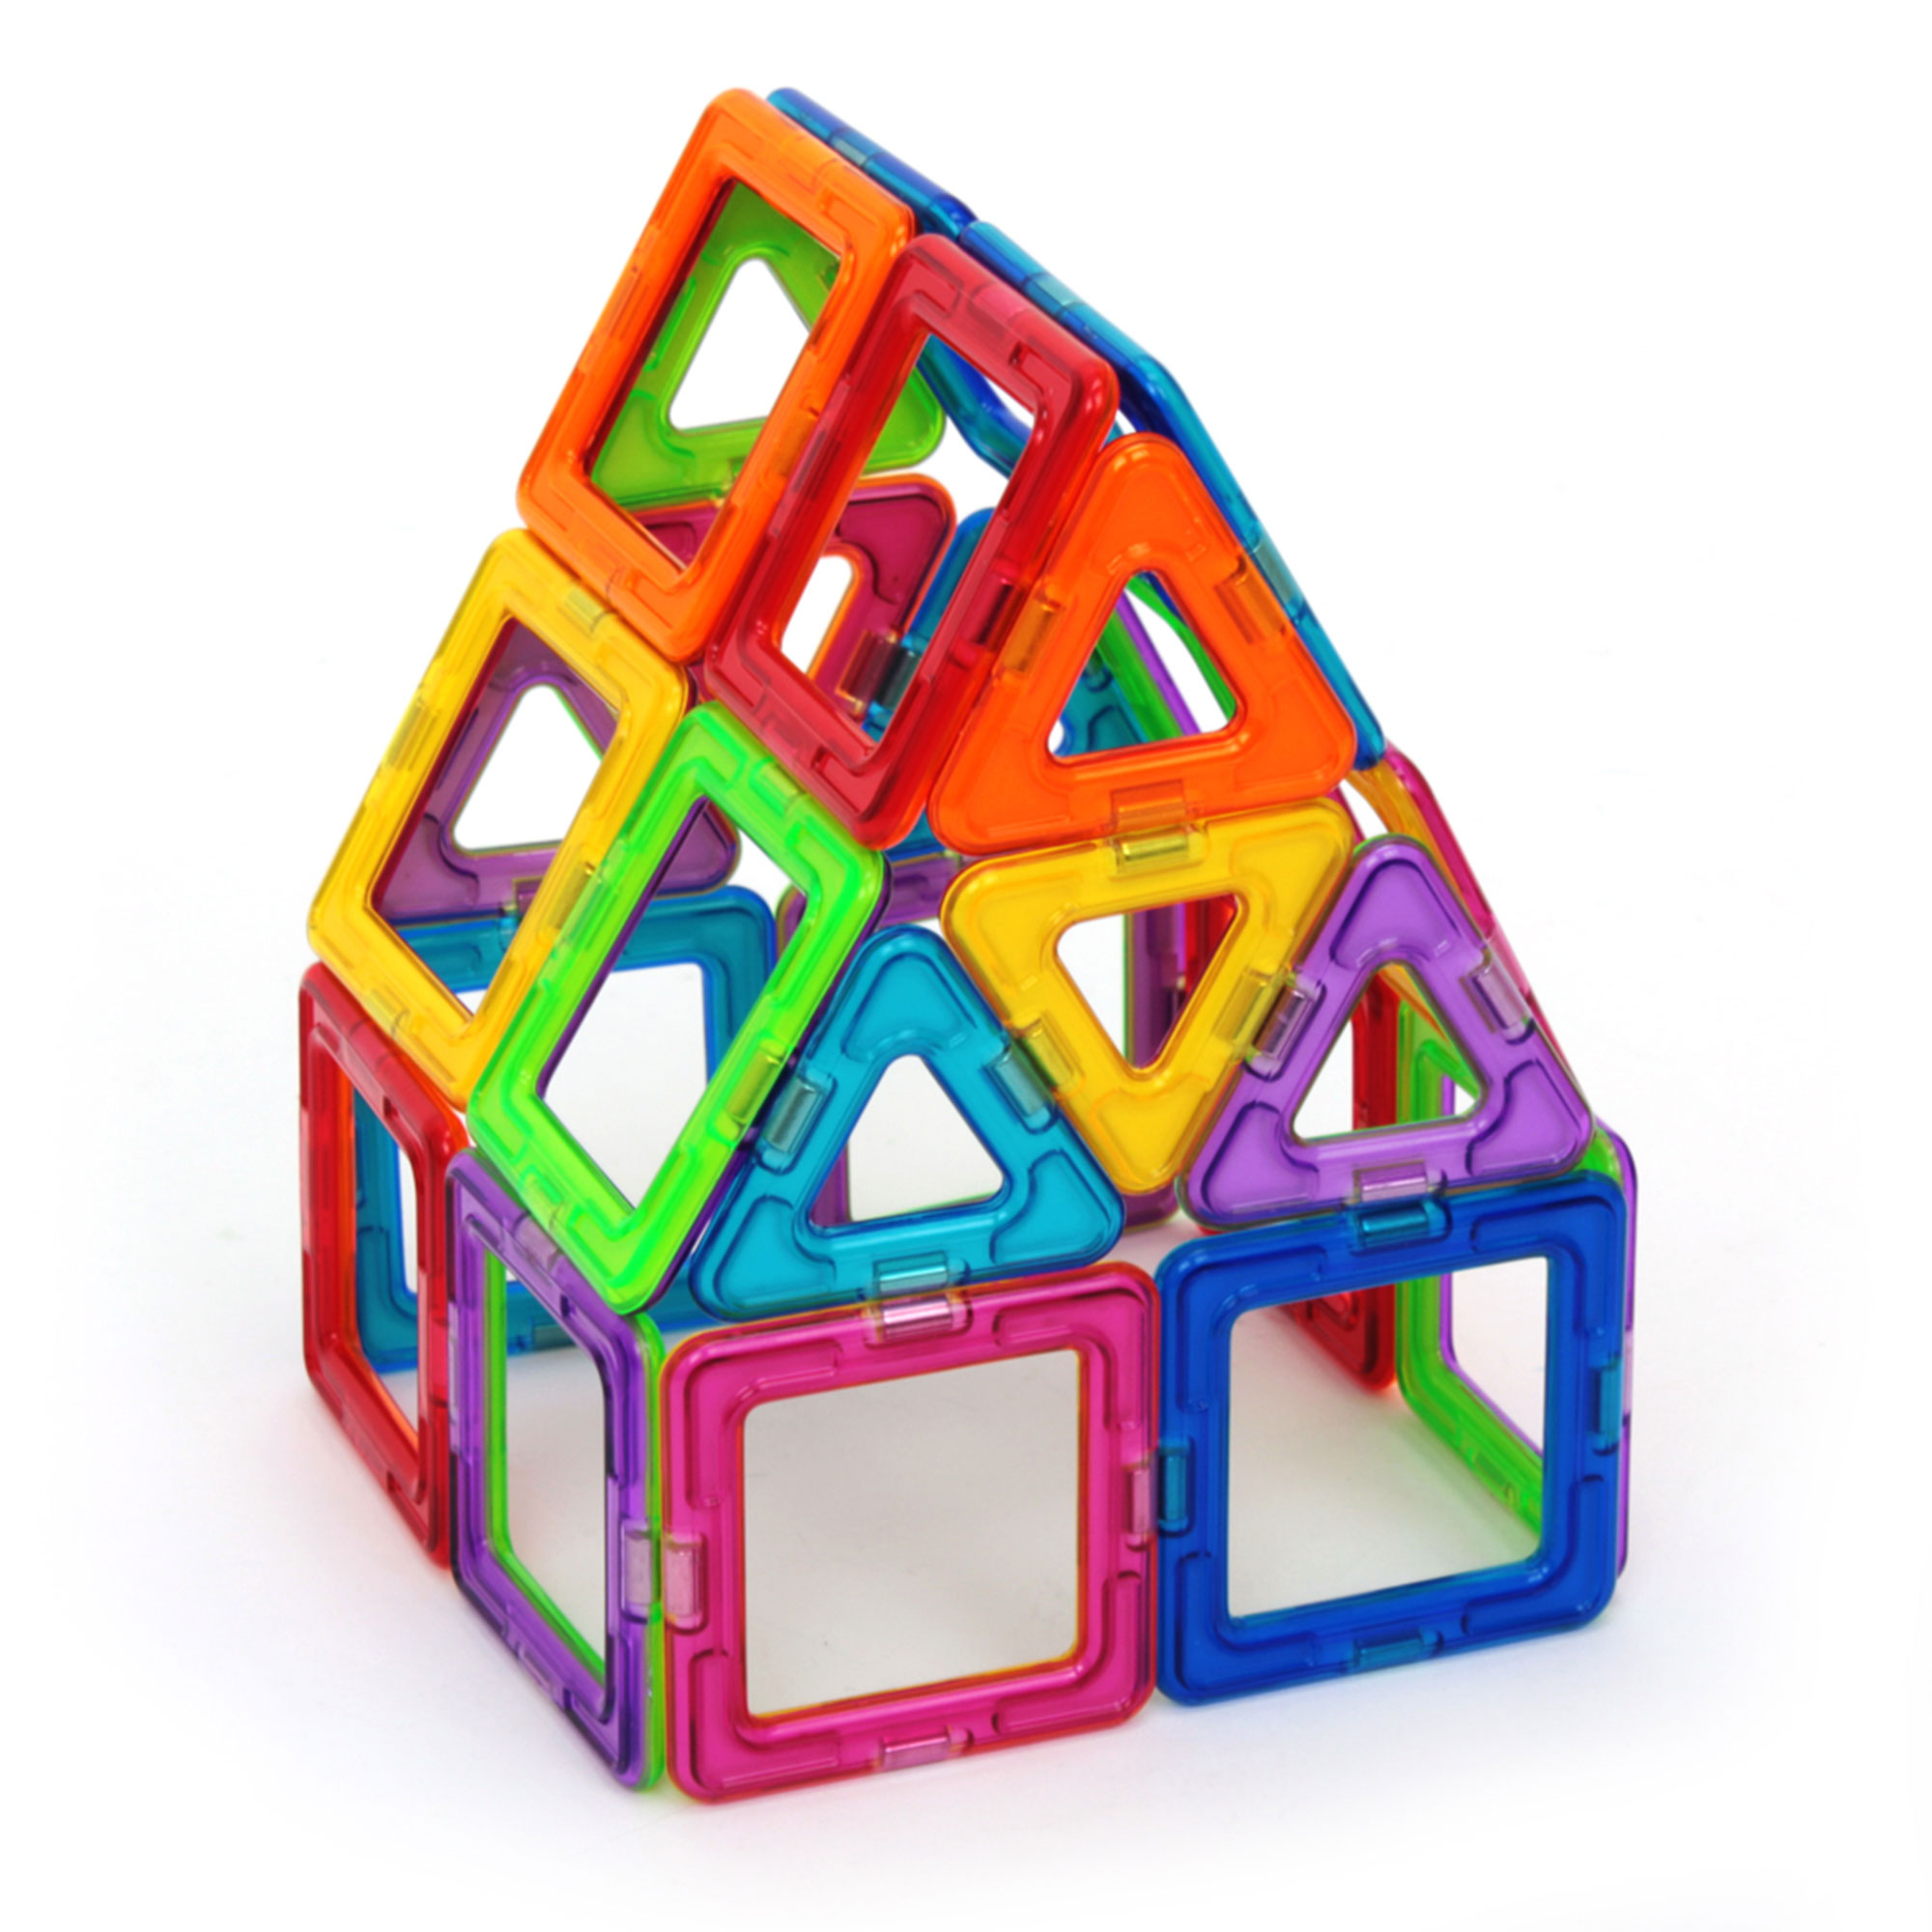 Magnetic Building Toys : Magformers magnetic construction sets review and giveaway